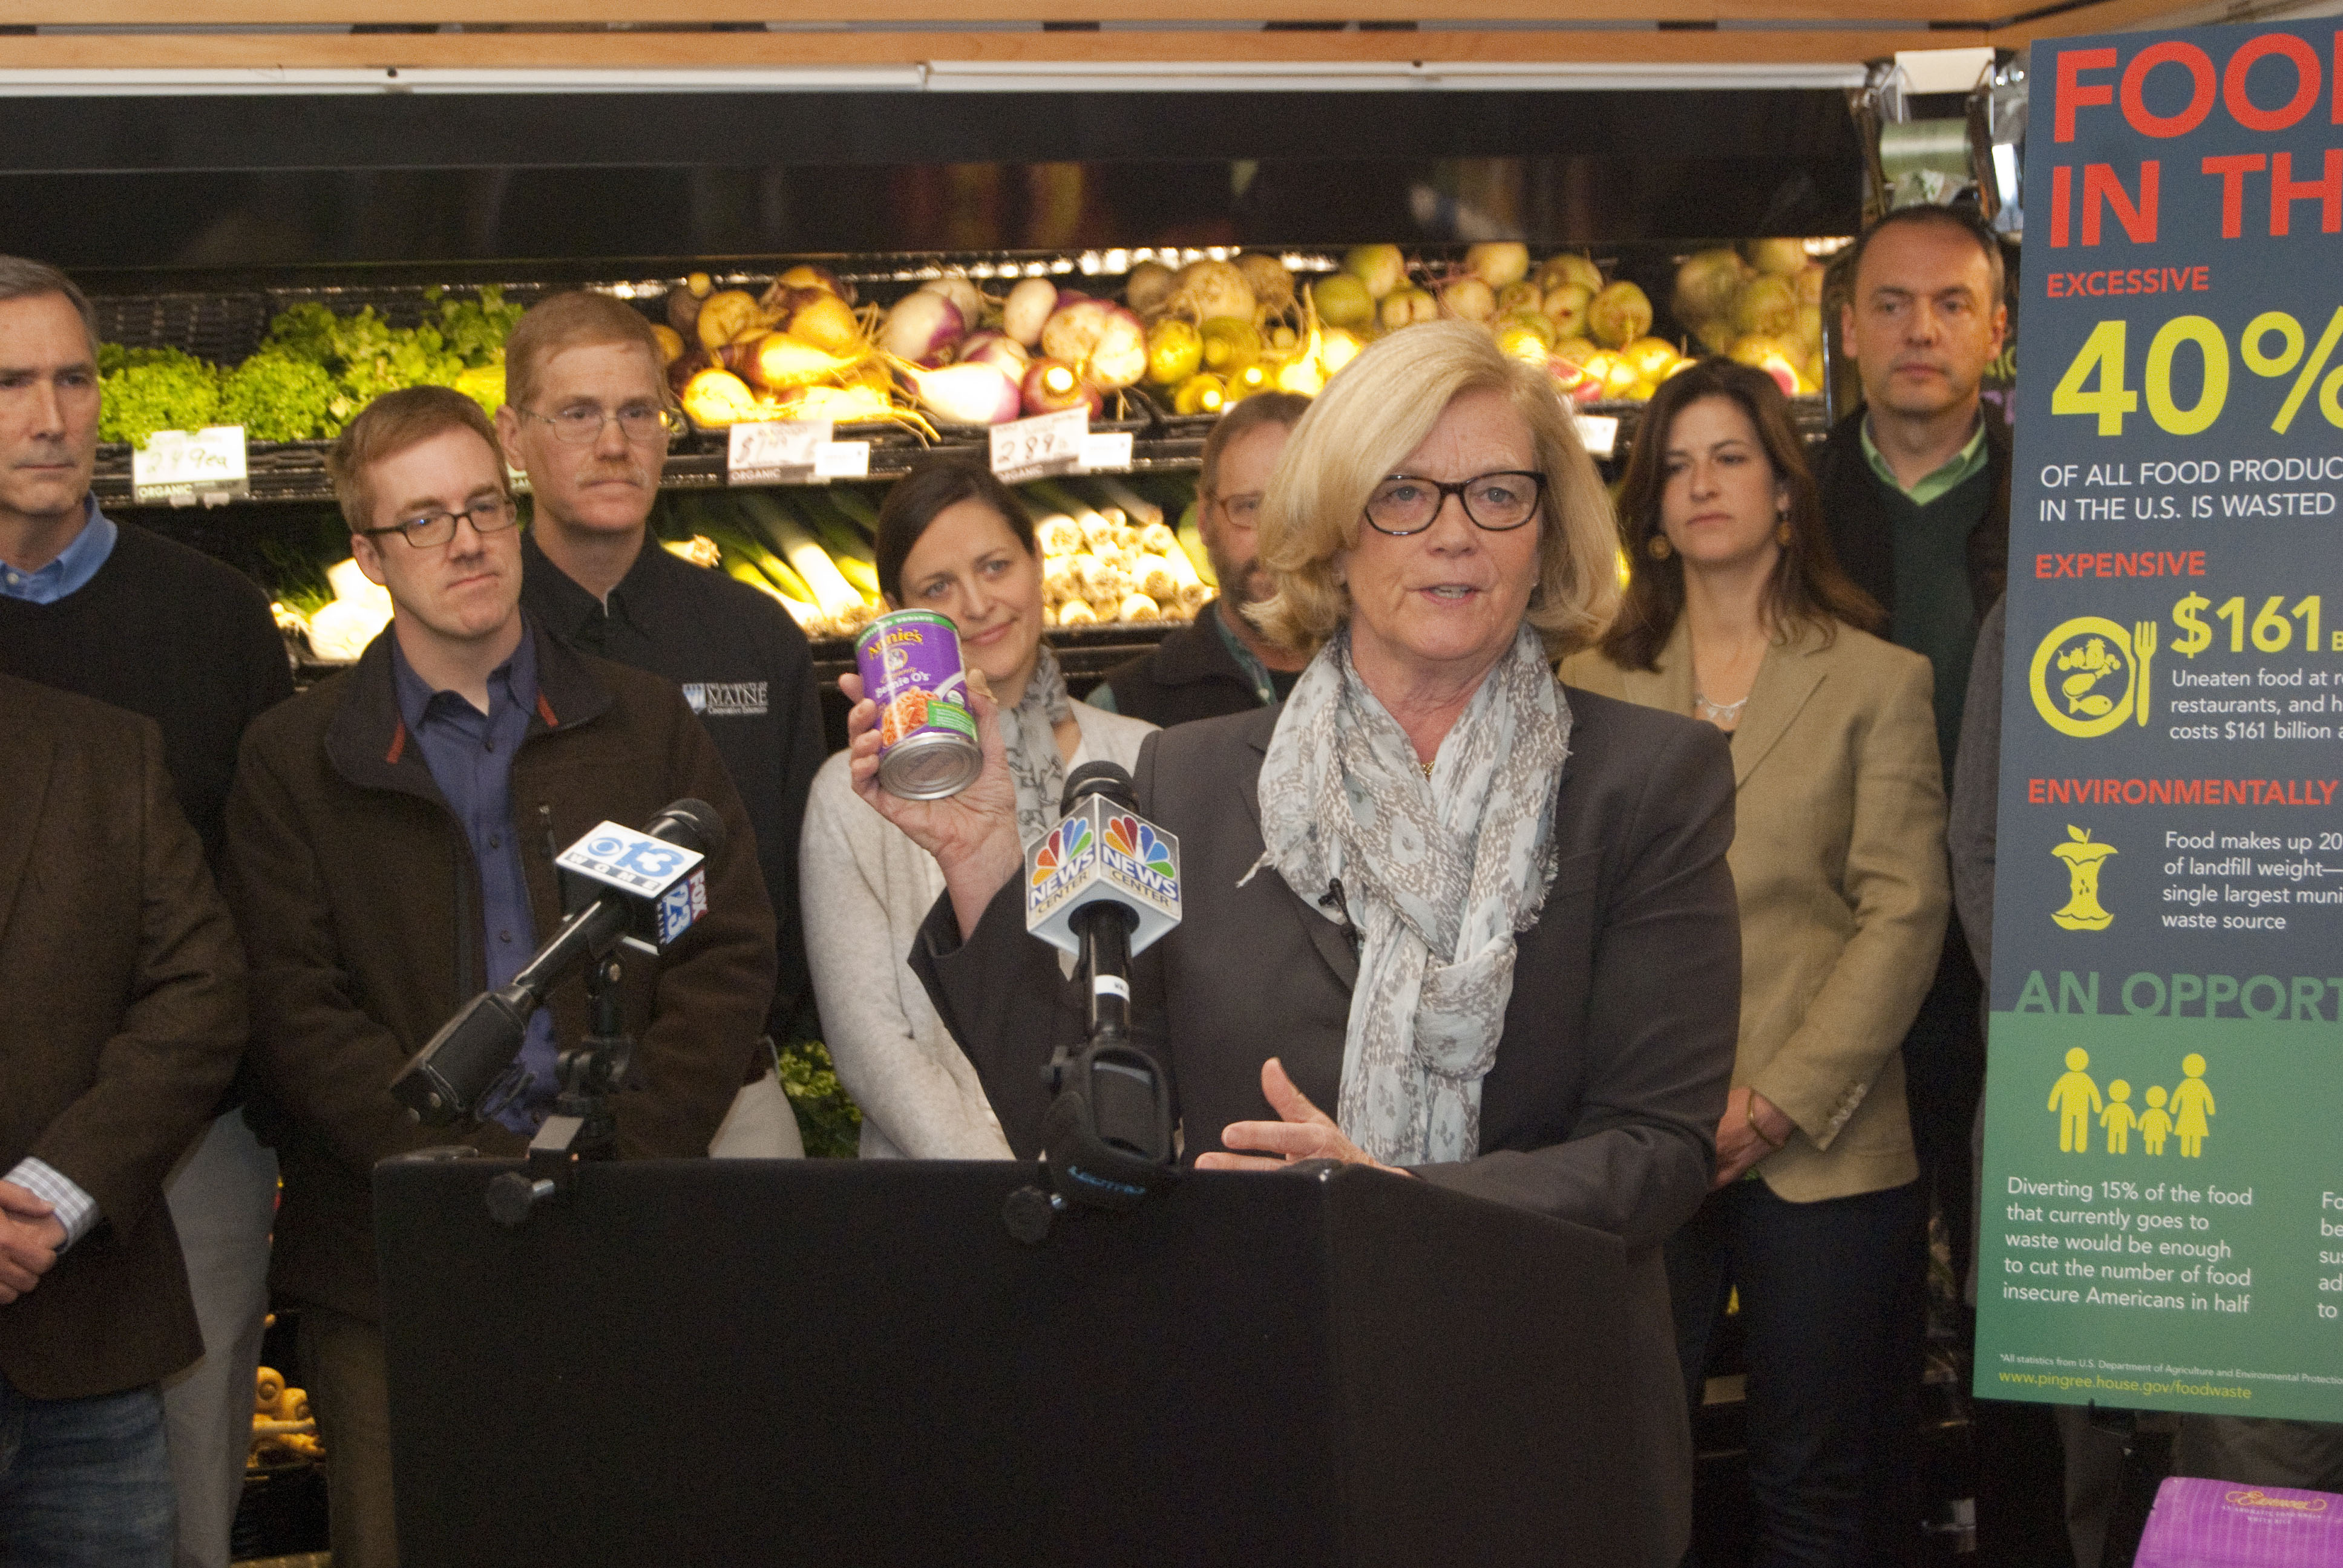 Chellie Pingree introducing legislation at the 2015 Food Recover Act Press Conference